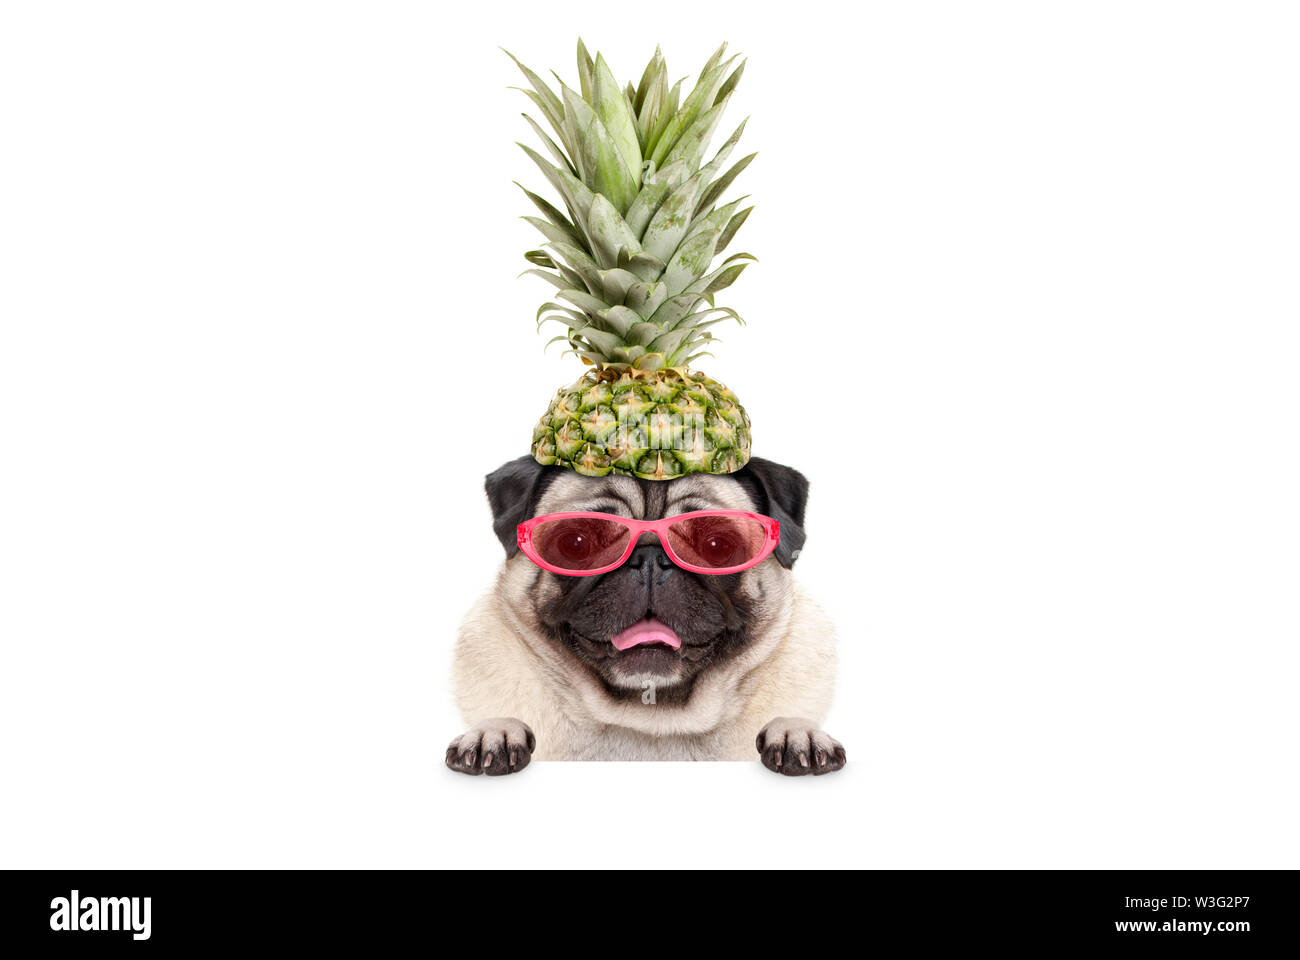 portrait of cute funny frolic summer pug puppy dog with sunglasses and pineapple hat, hanging with paws on blank white banner, isolated Stock Photo